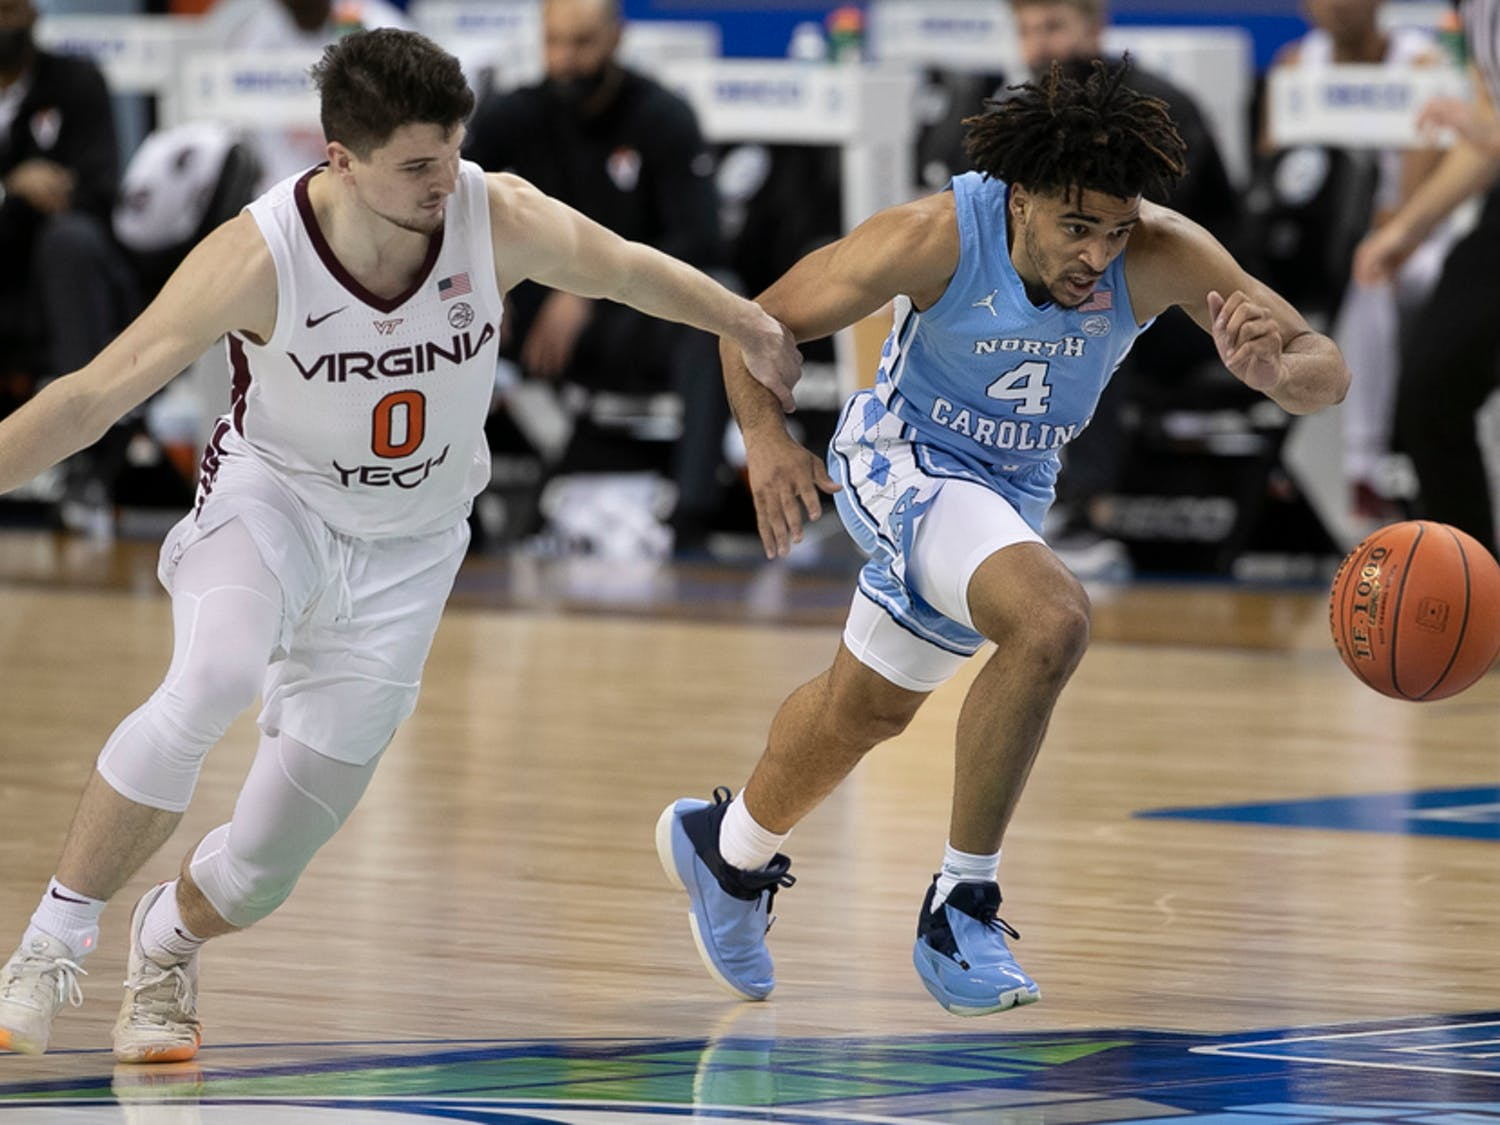 Virginia Tech's sophomore guard Hunter Cattoor defends against UNC freshman guard RJ Davis in the ACC Tournament Quarterfinals on Thursday, March 11, 2021 in the Greensboro Coliseum. The Tar Heels beat the Hokies 81-73. Photo courtesy of Robert Willett/The News & Observer.